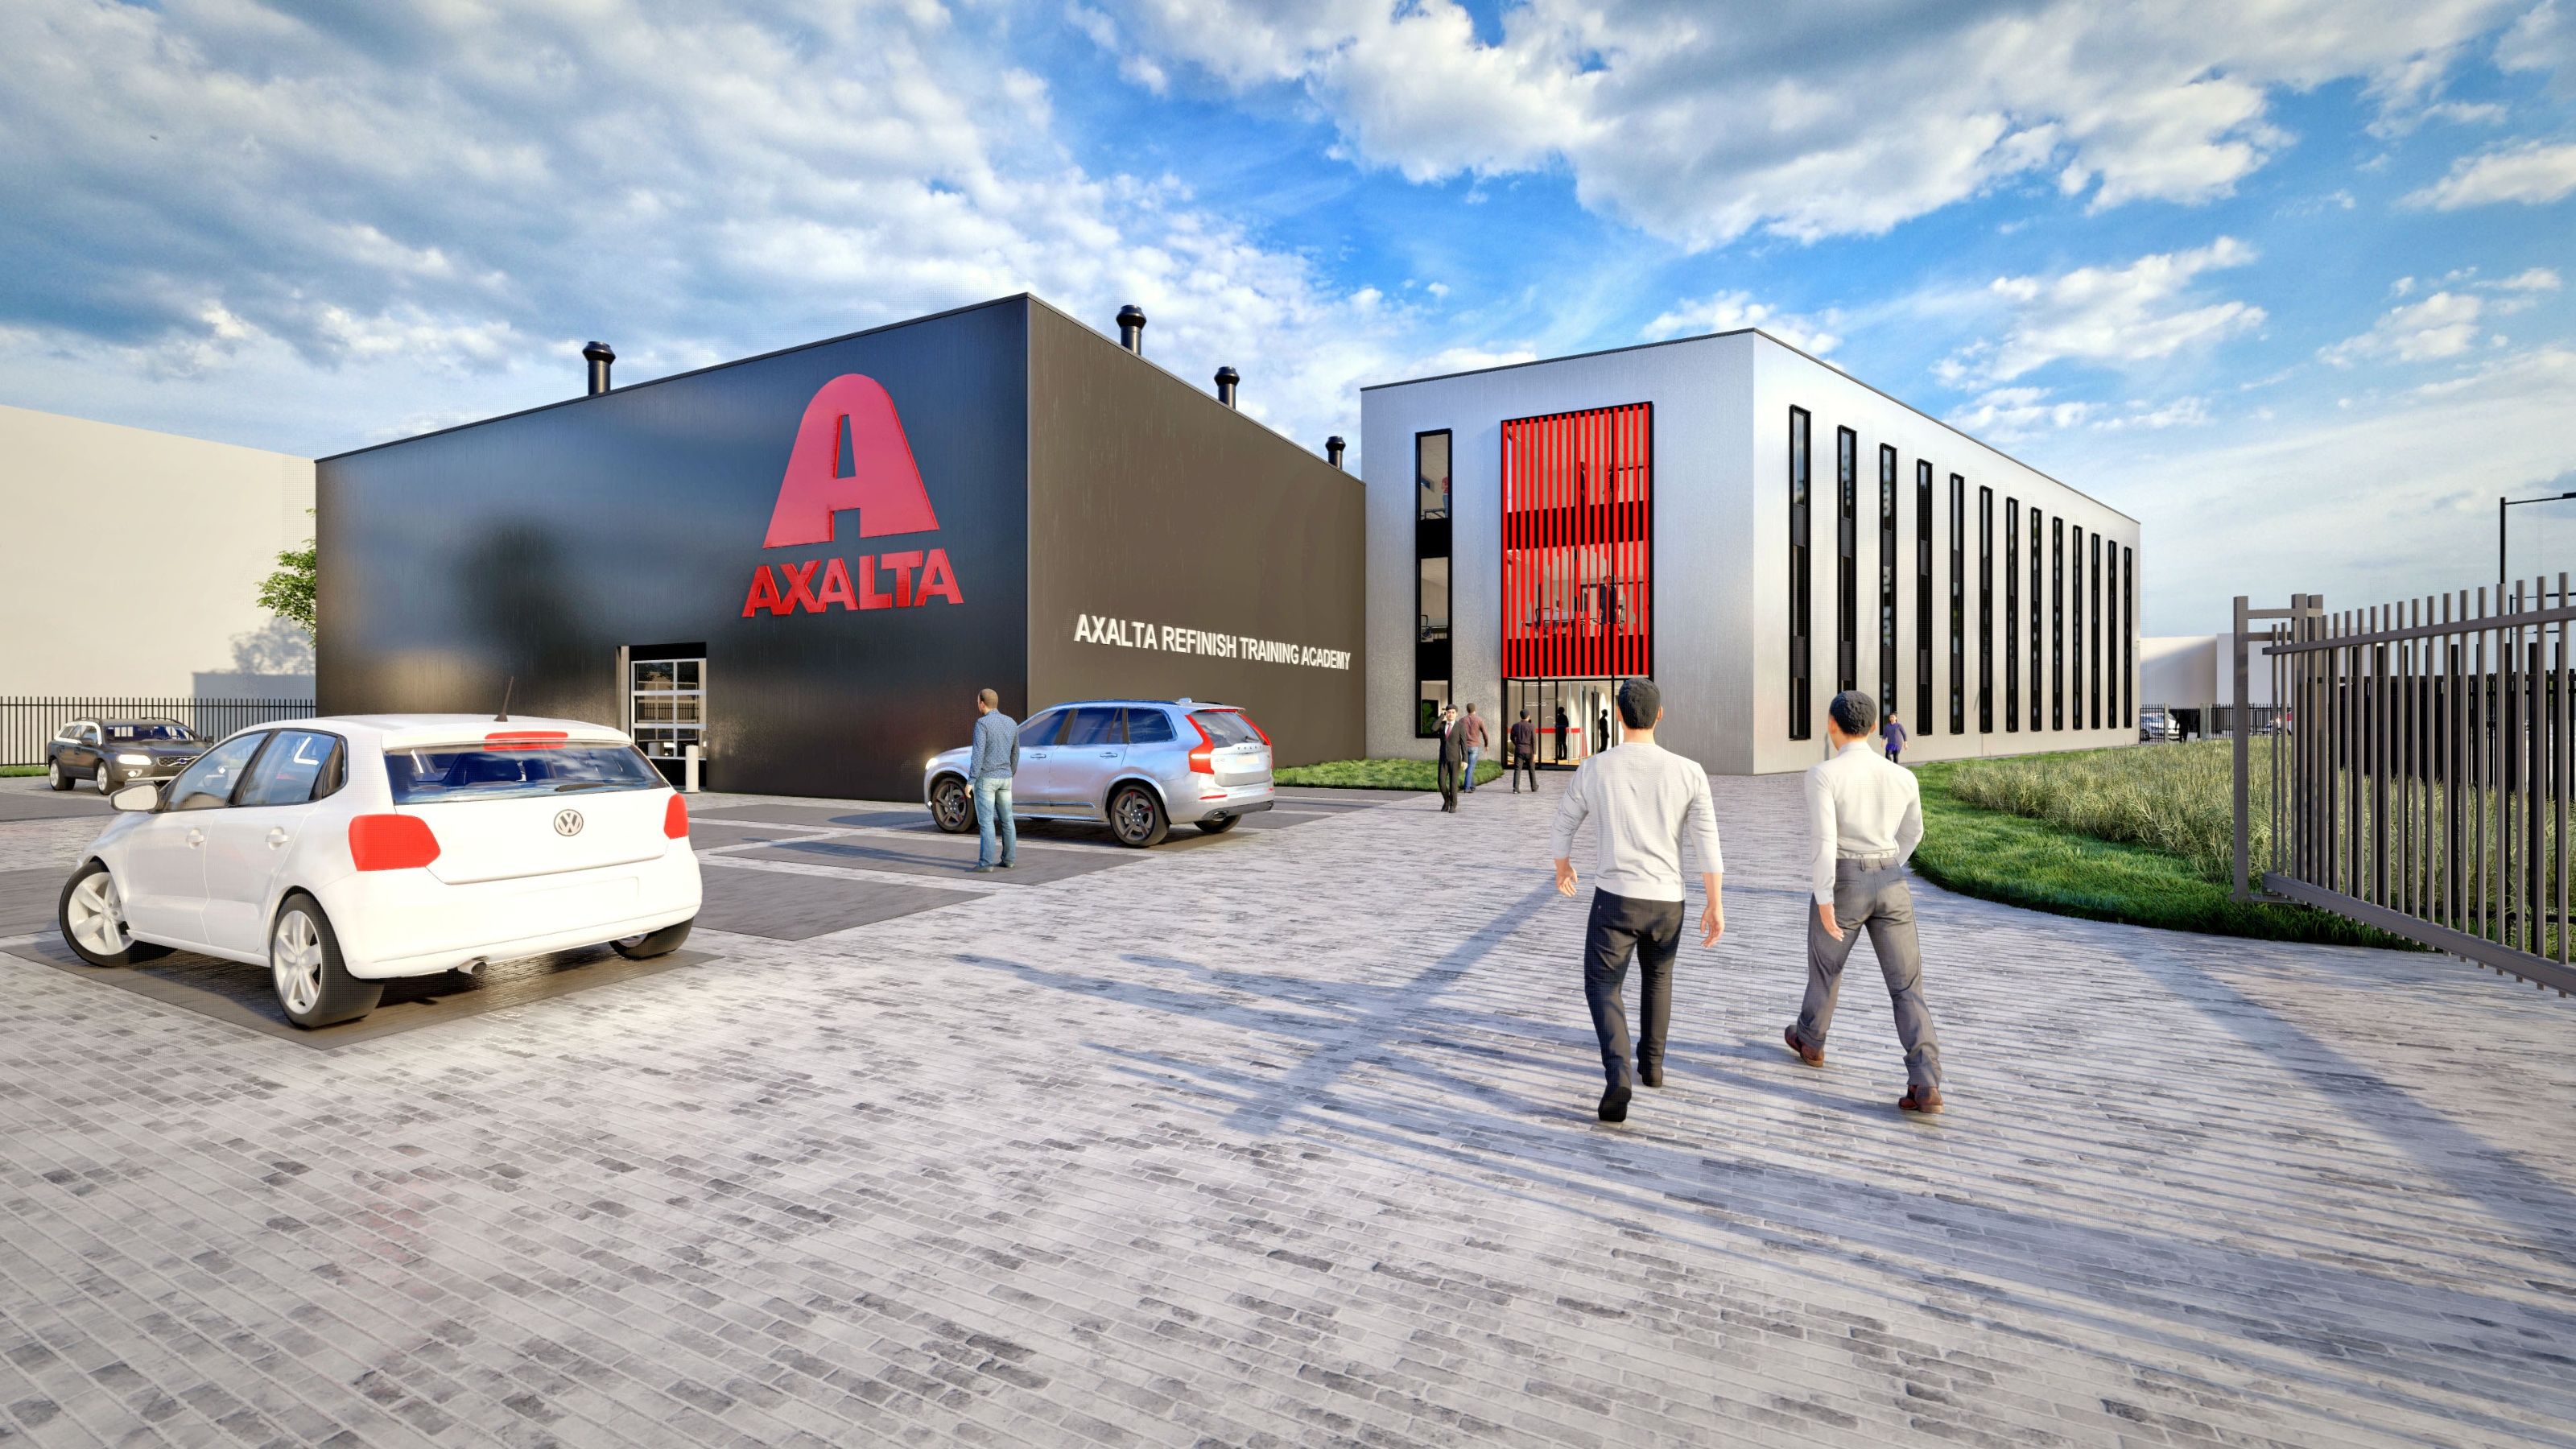 Axalta Signs Agreement to build New Facility in The Netherlands